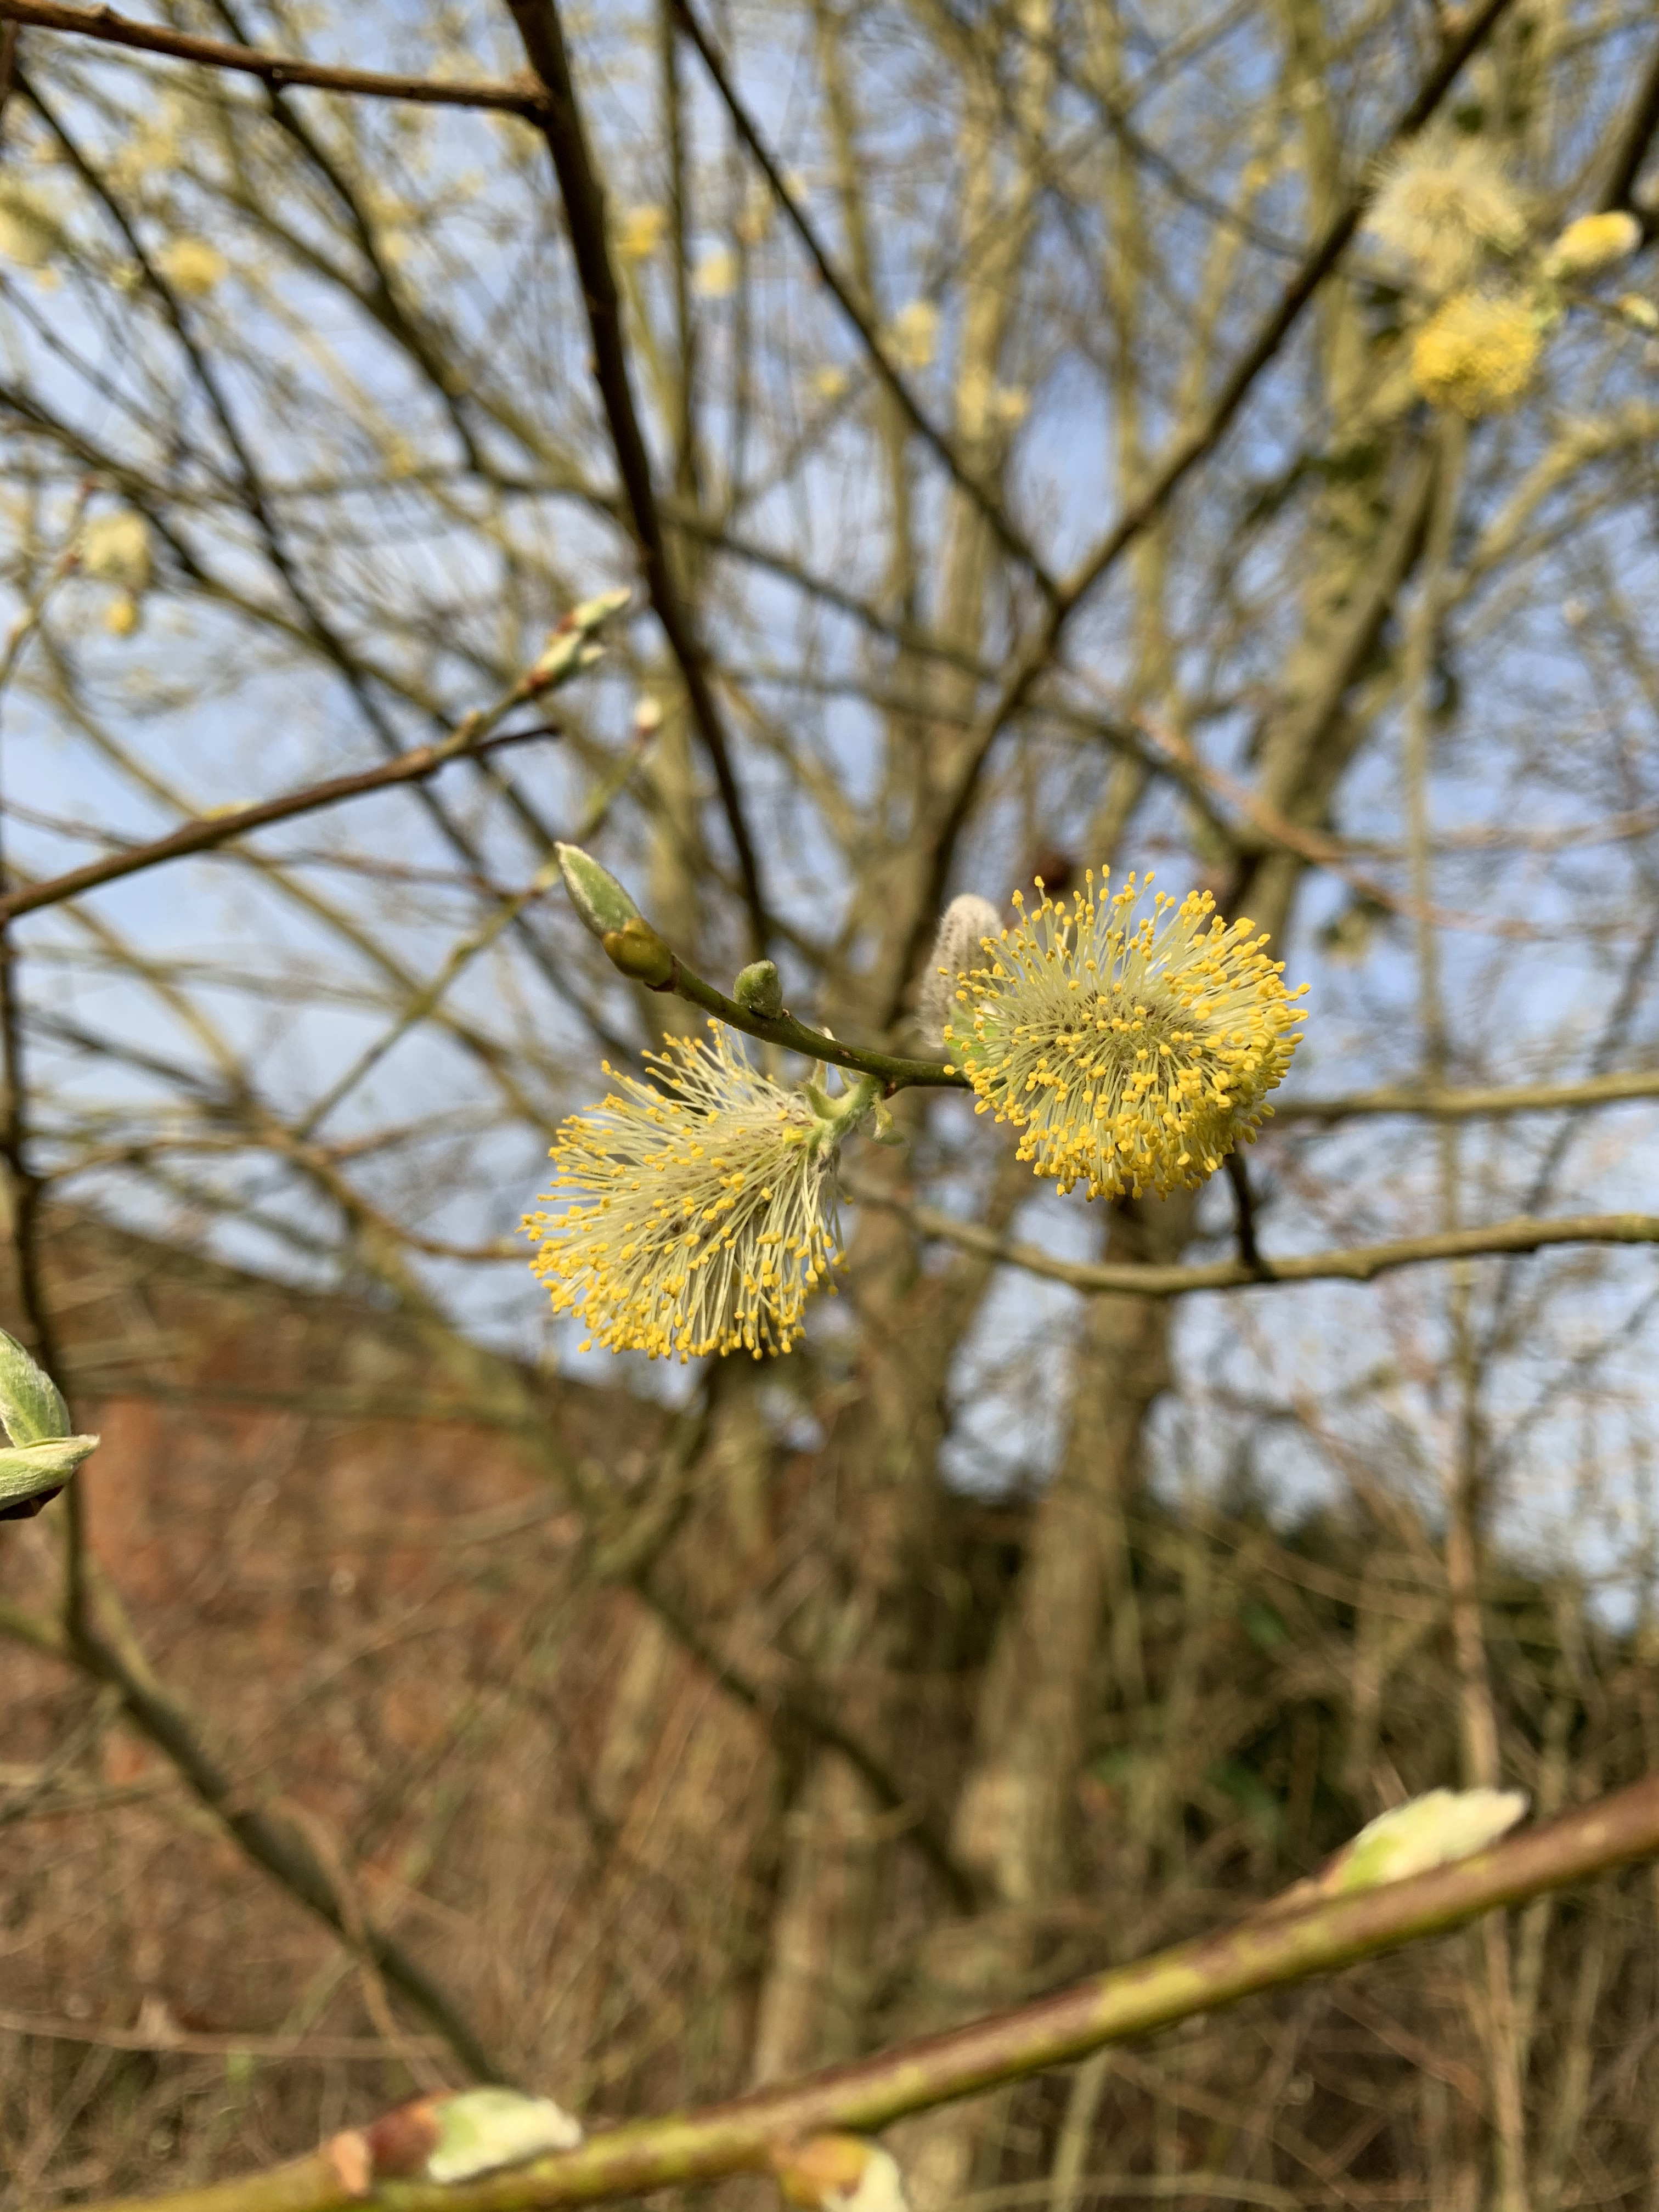 Willow buds fully open and sharing their pollen with everyone!